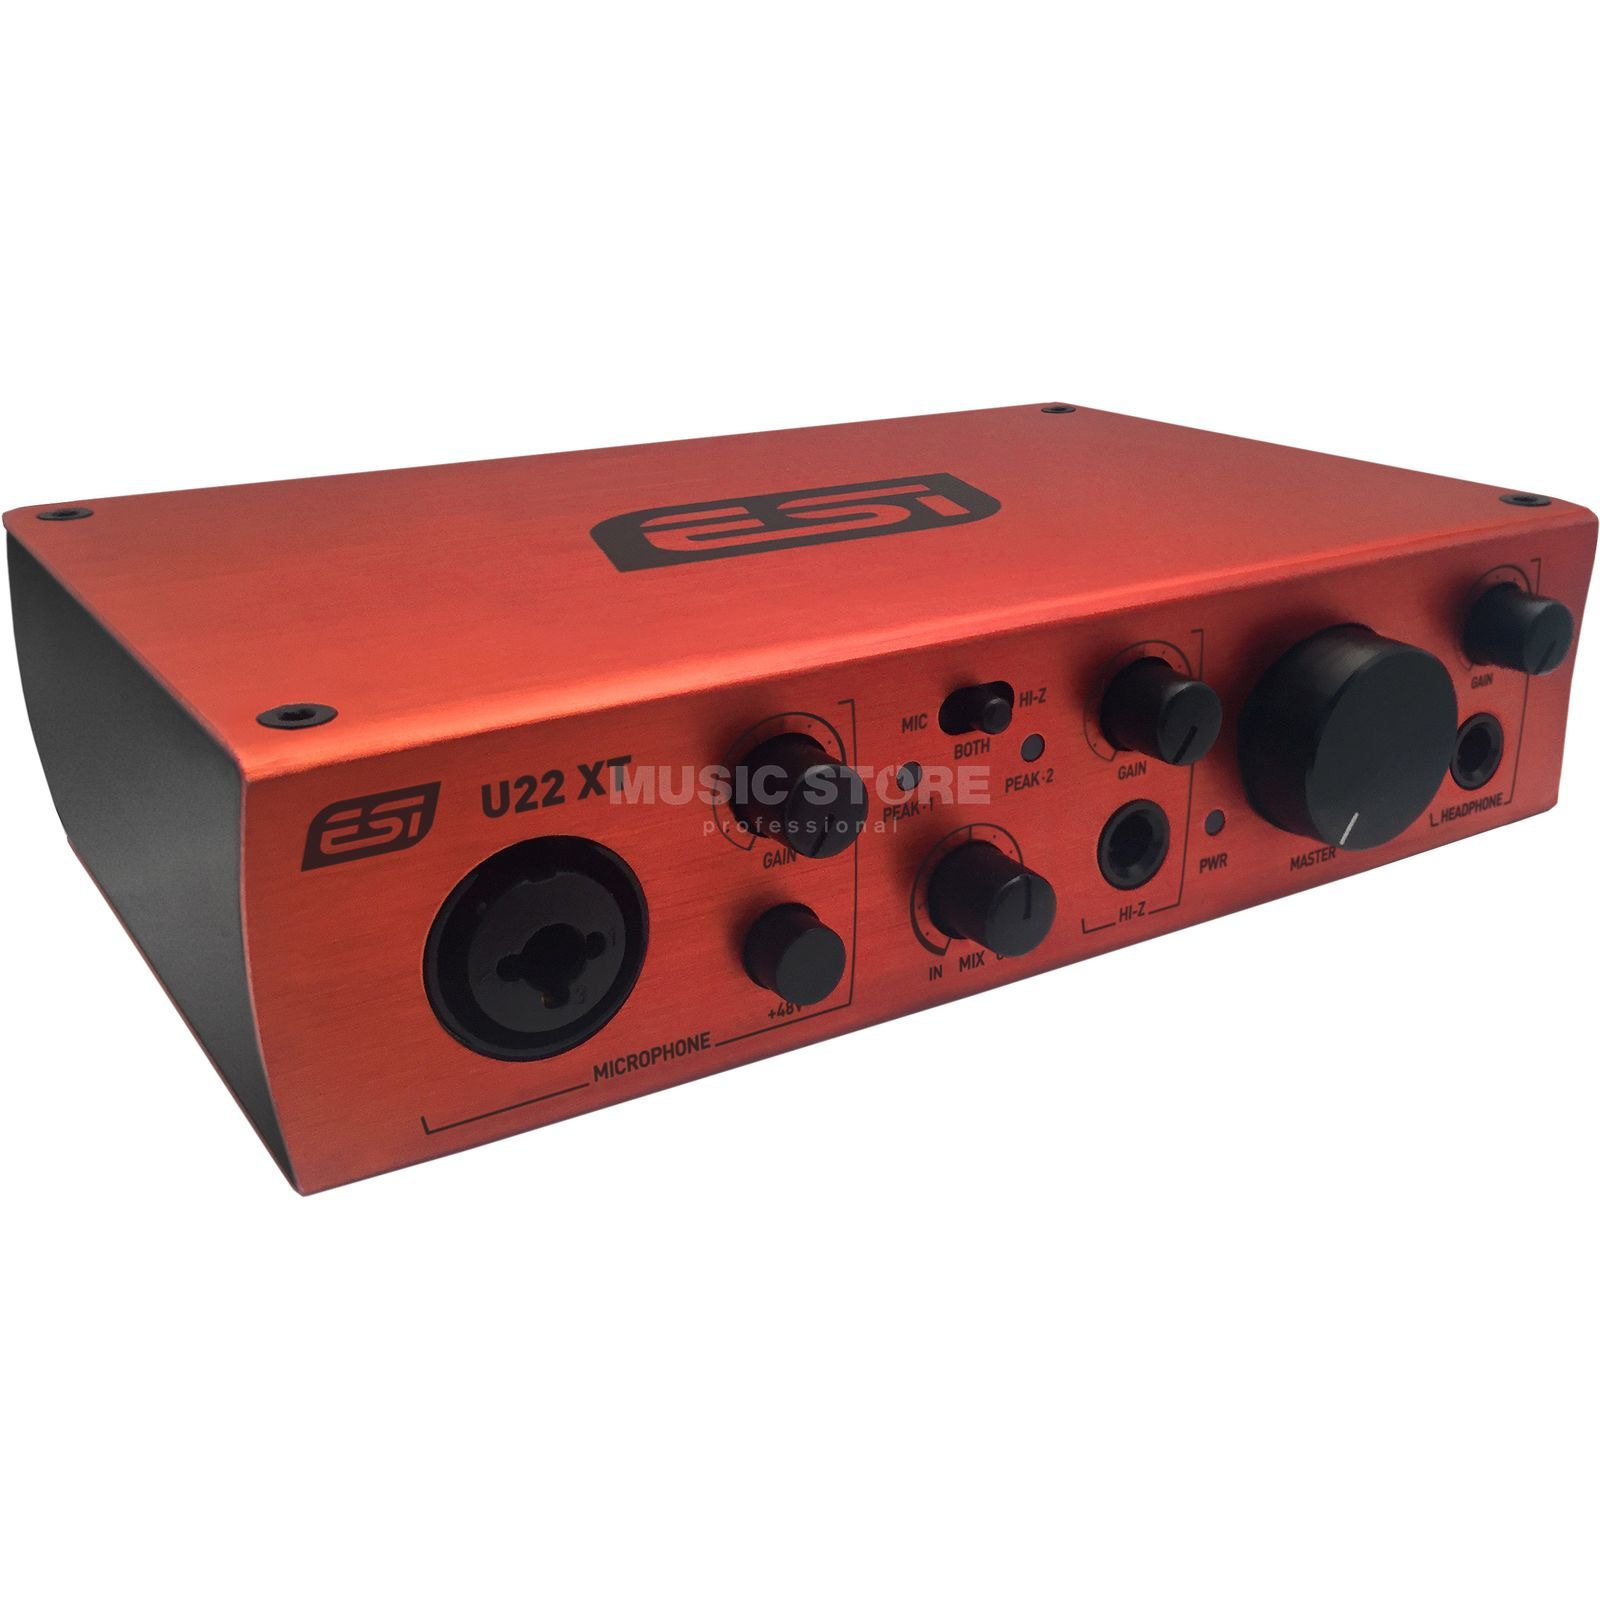 ESI U22 XT USB Audio-Interface Produktbild